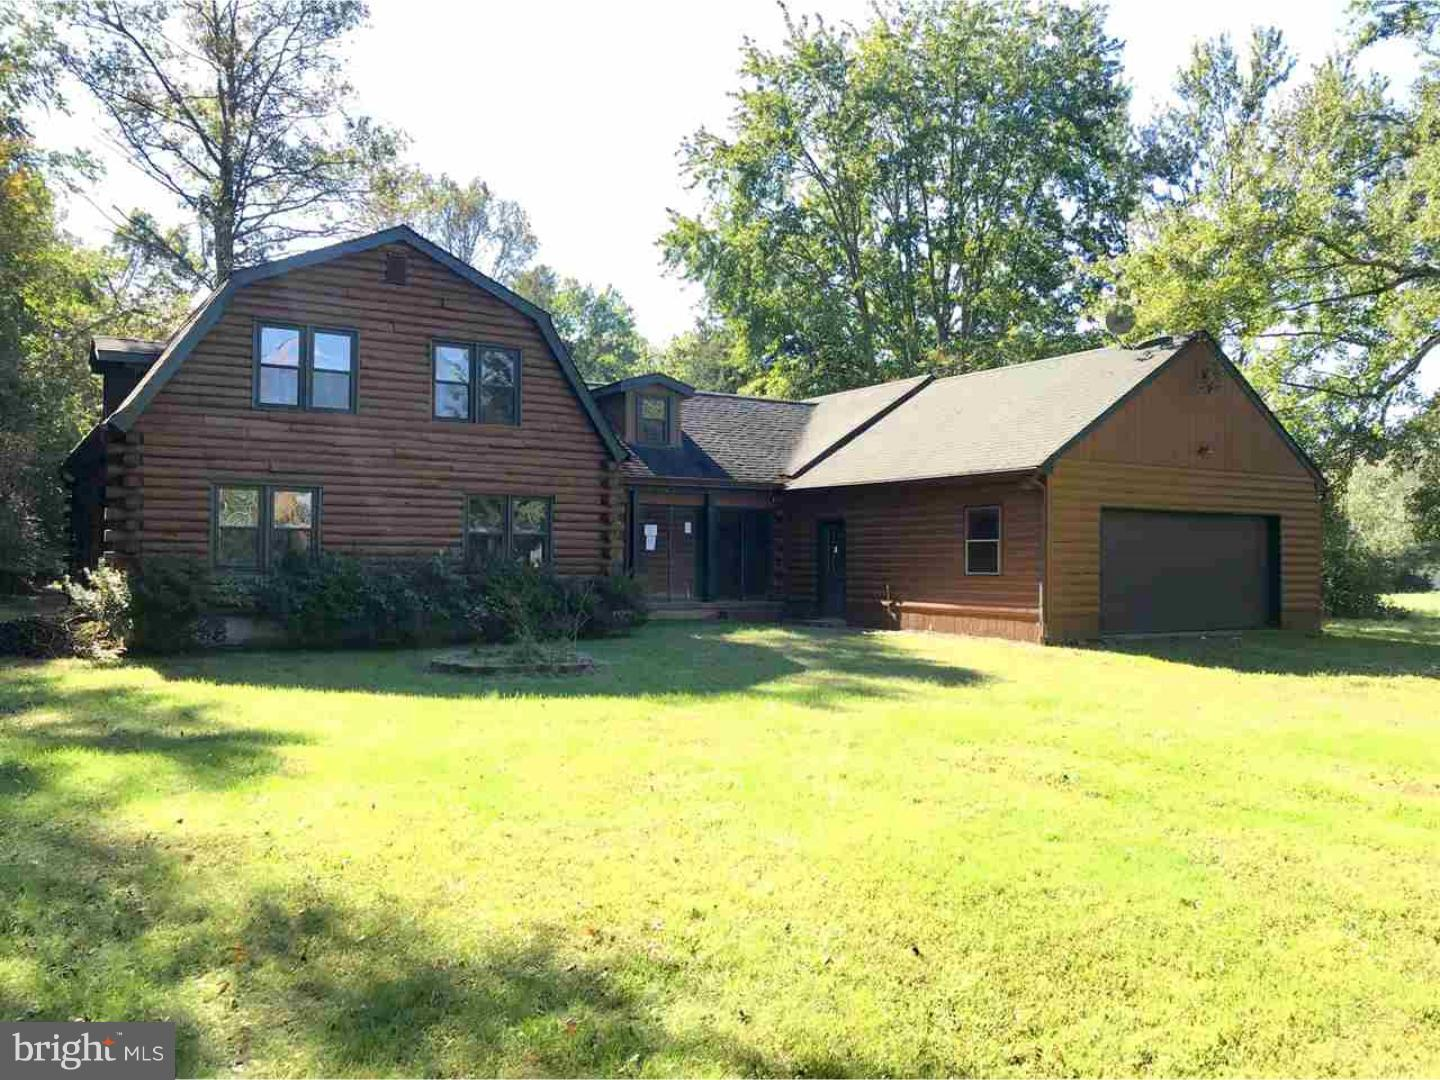 Single Family Home for Sale at 85 QUINTON ALLOWAY Road Alloway, New Jersey 08079 United States